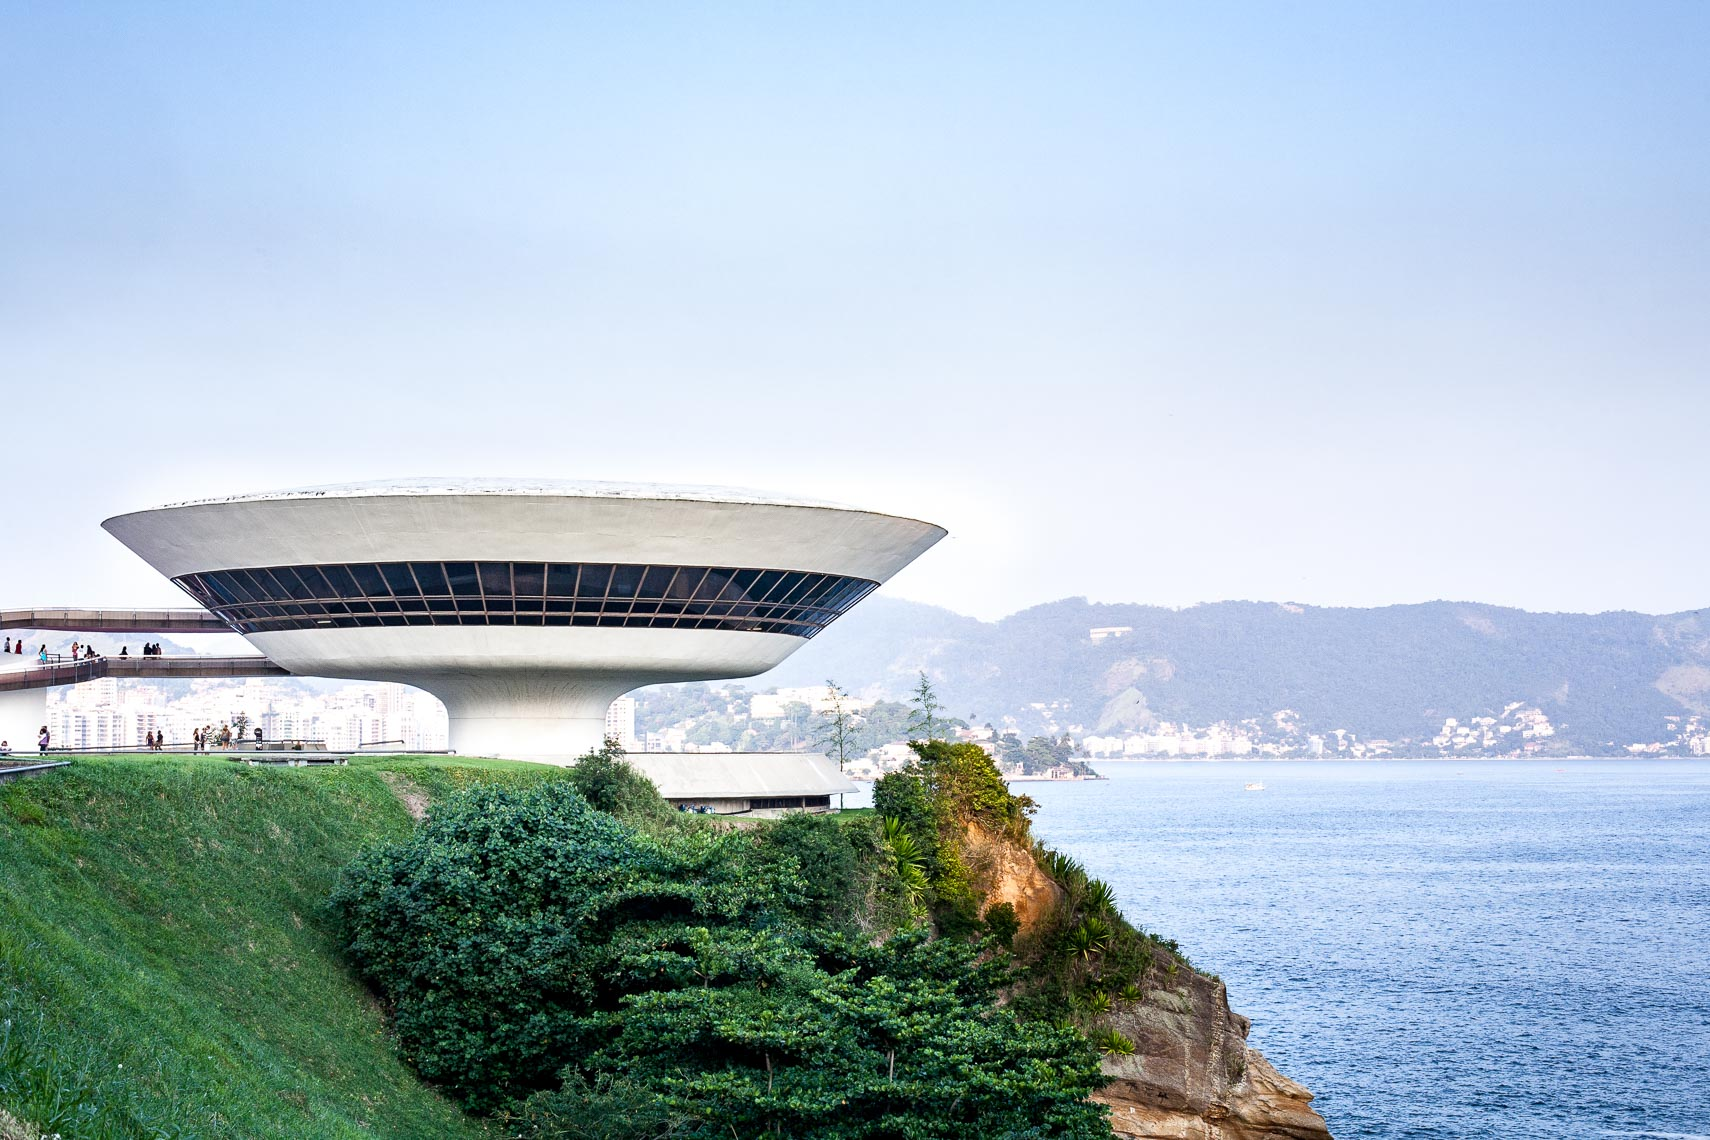 UFO shaped building at the edge of a bay